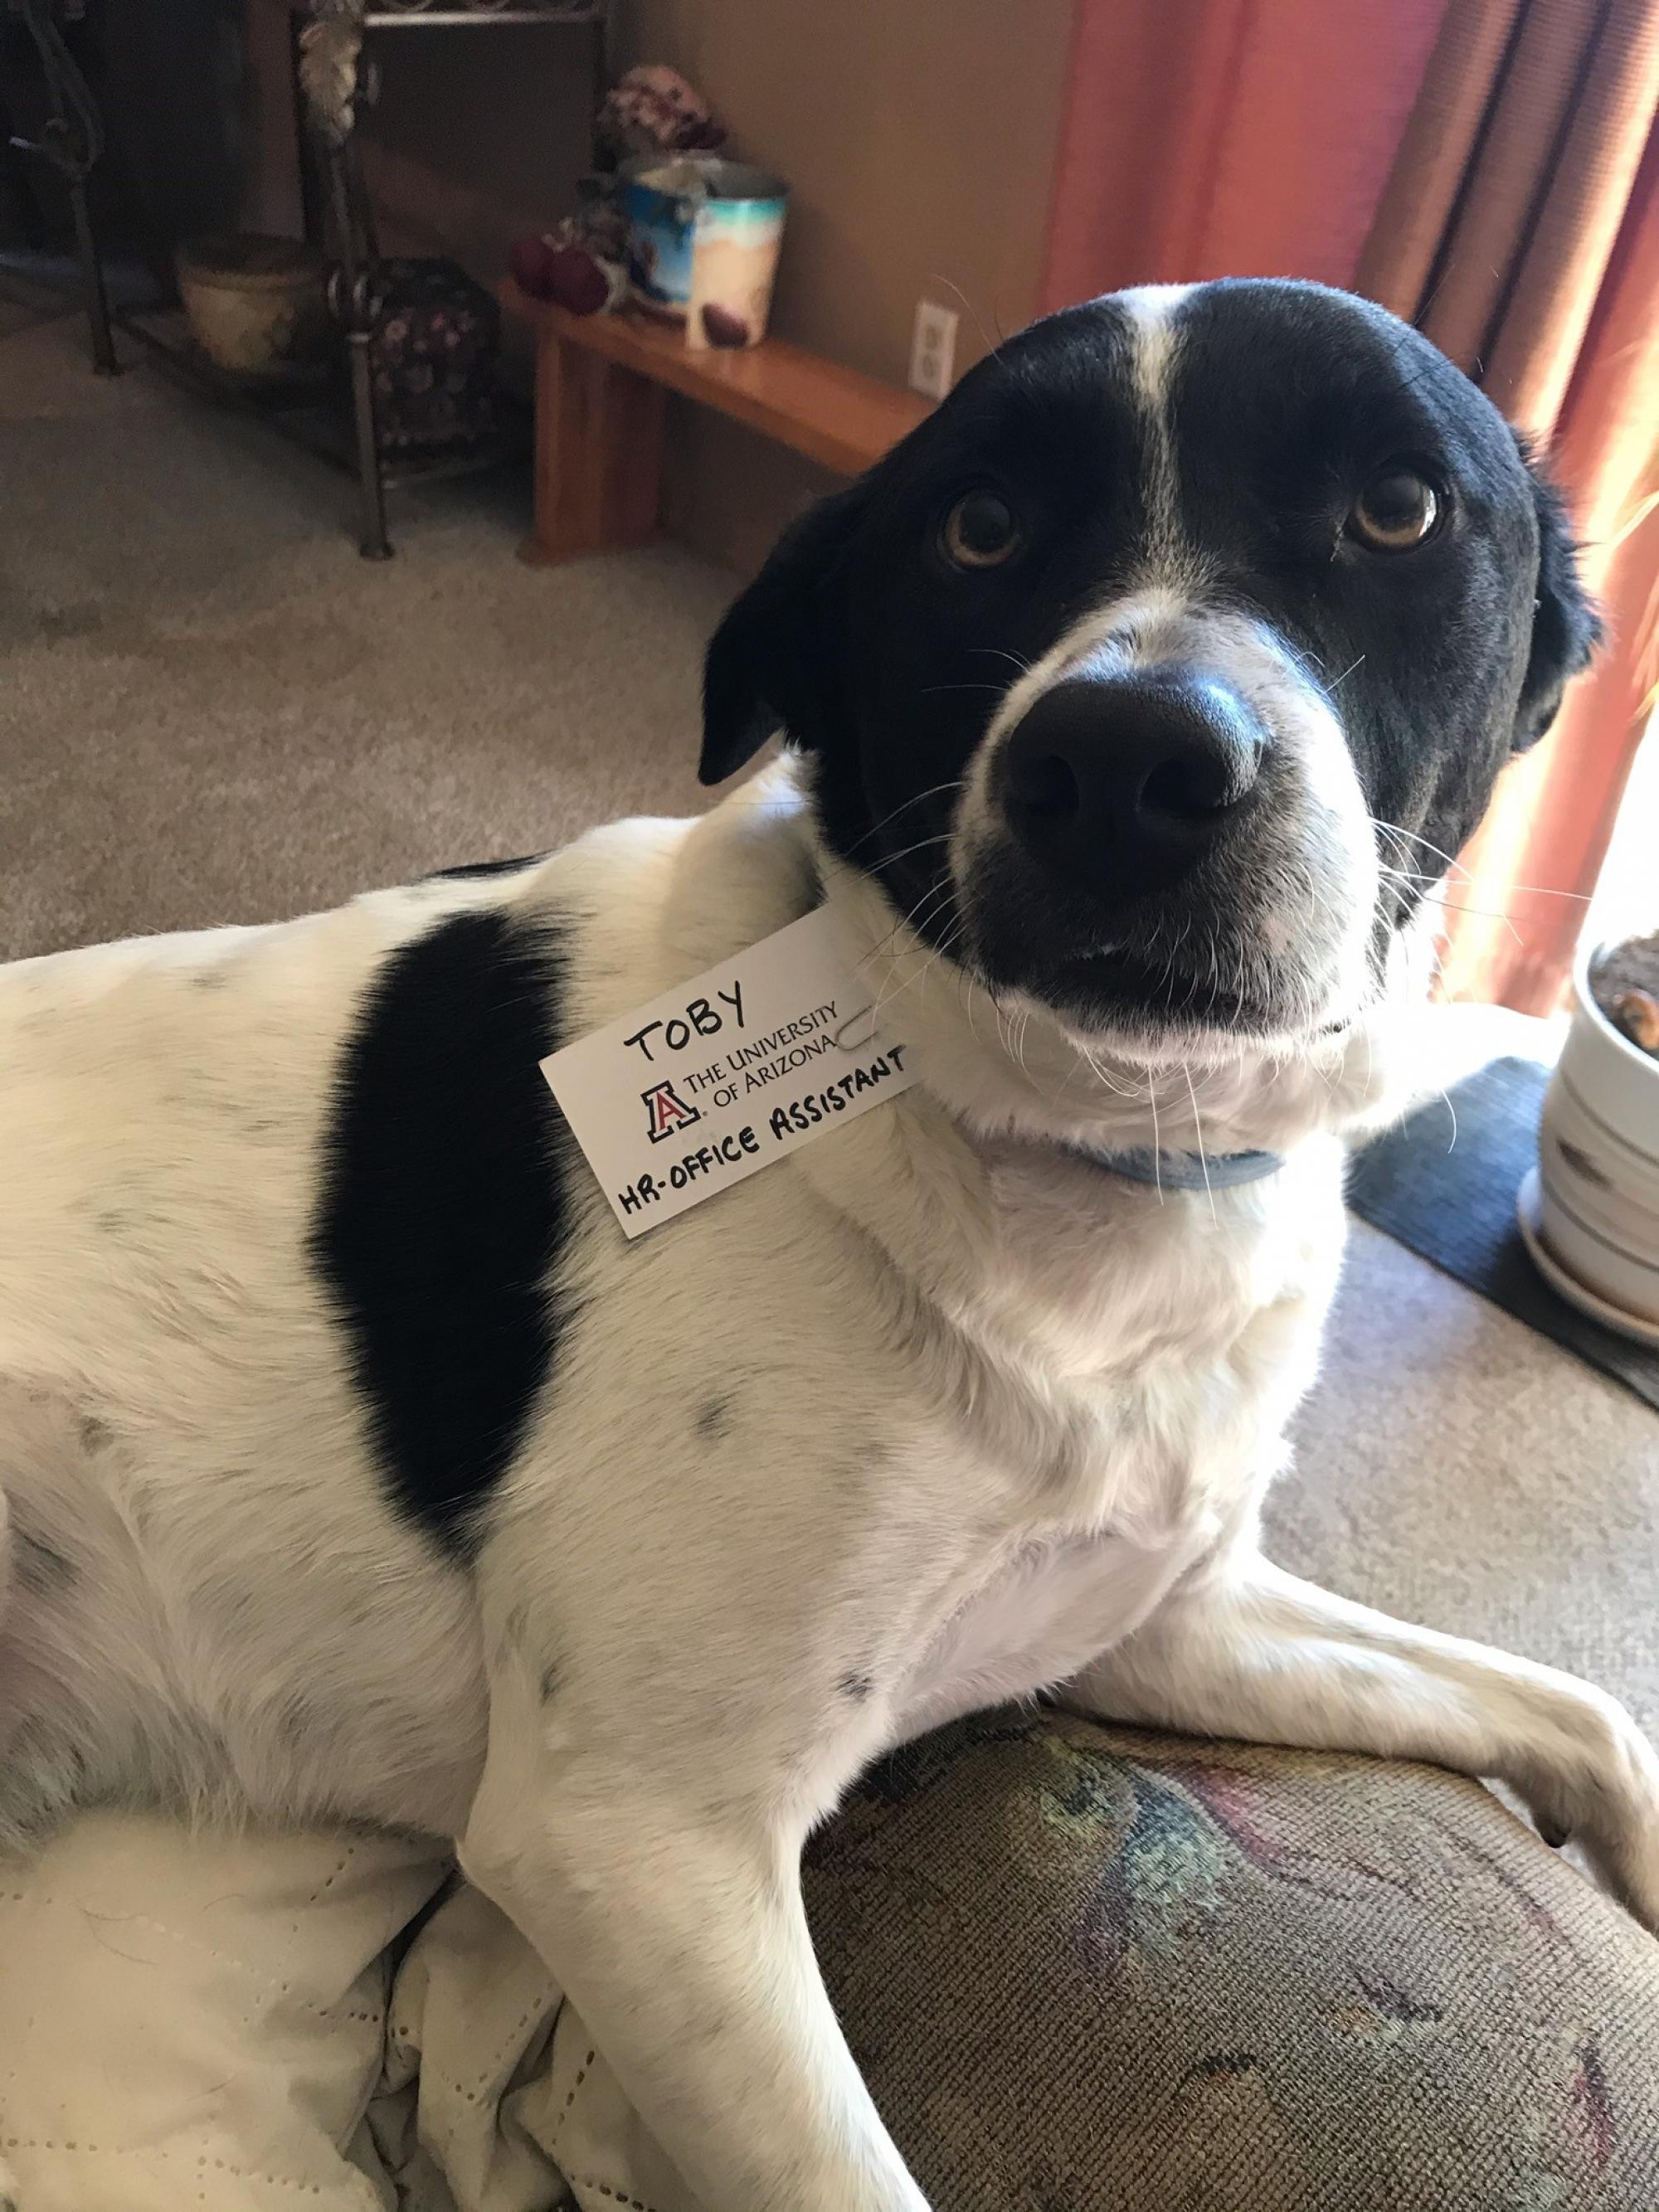 This is Toby, my assistant. He lets me know when it's time to go for a walk and time to get a snack or treat. What would I do without him? – Diane Schaller, administrative associate in Housing and Residential Life